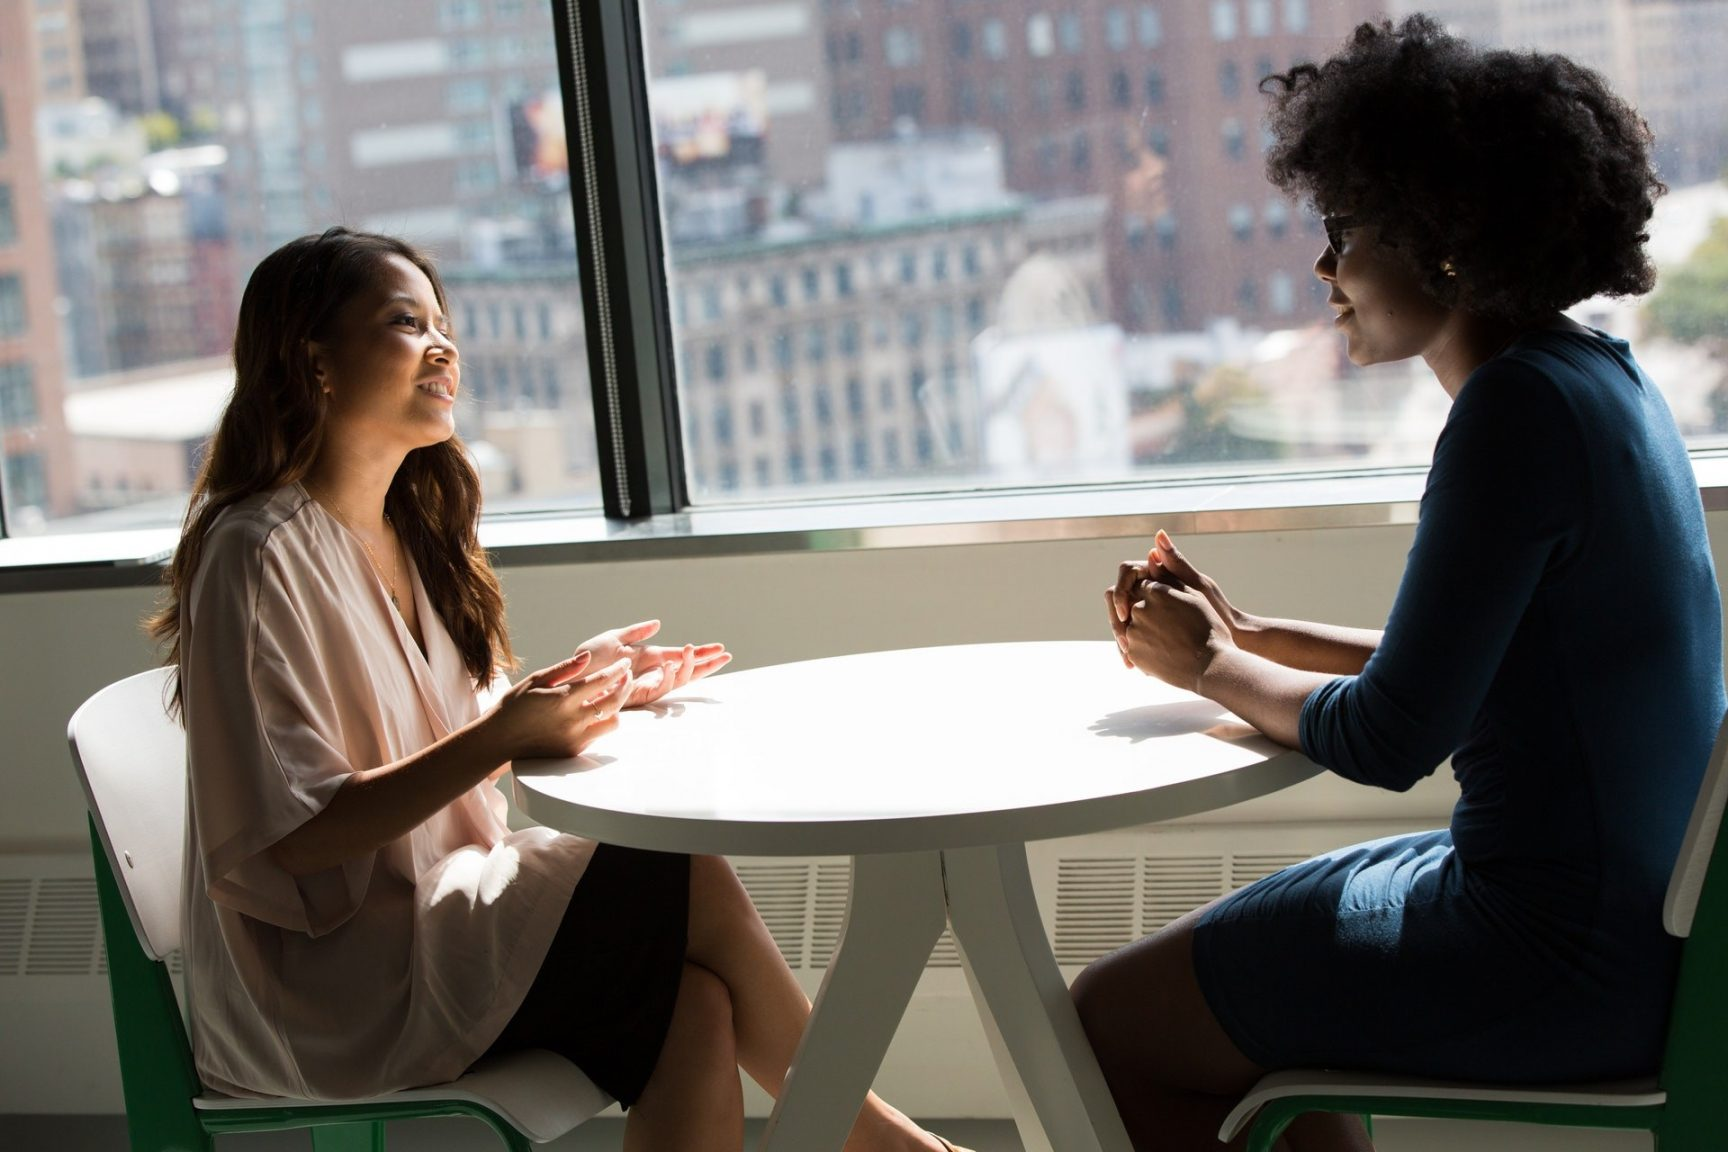 Two women talking to each other over a table